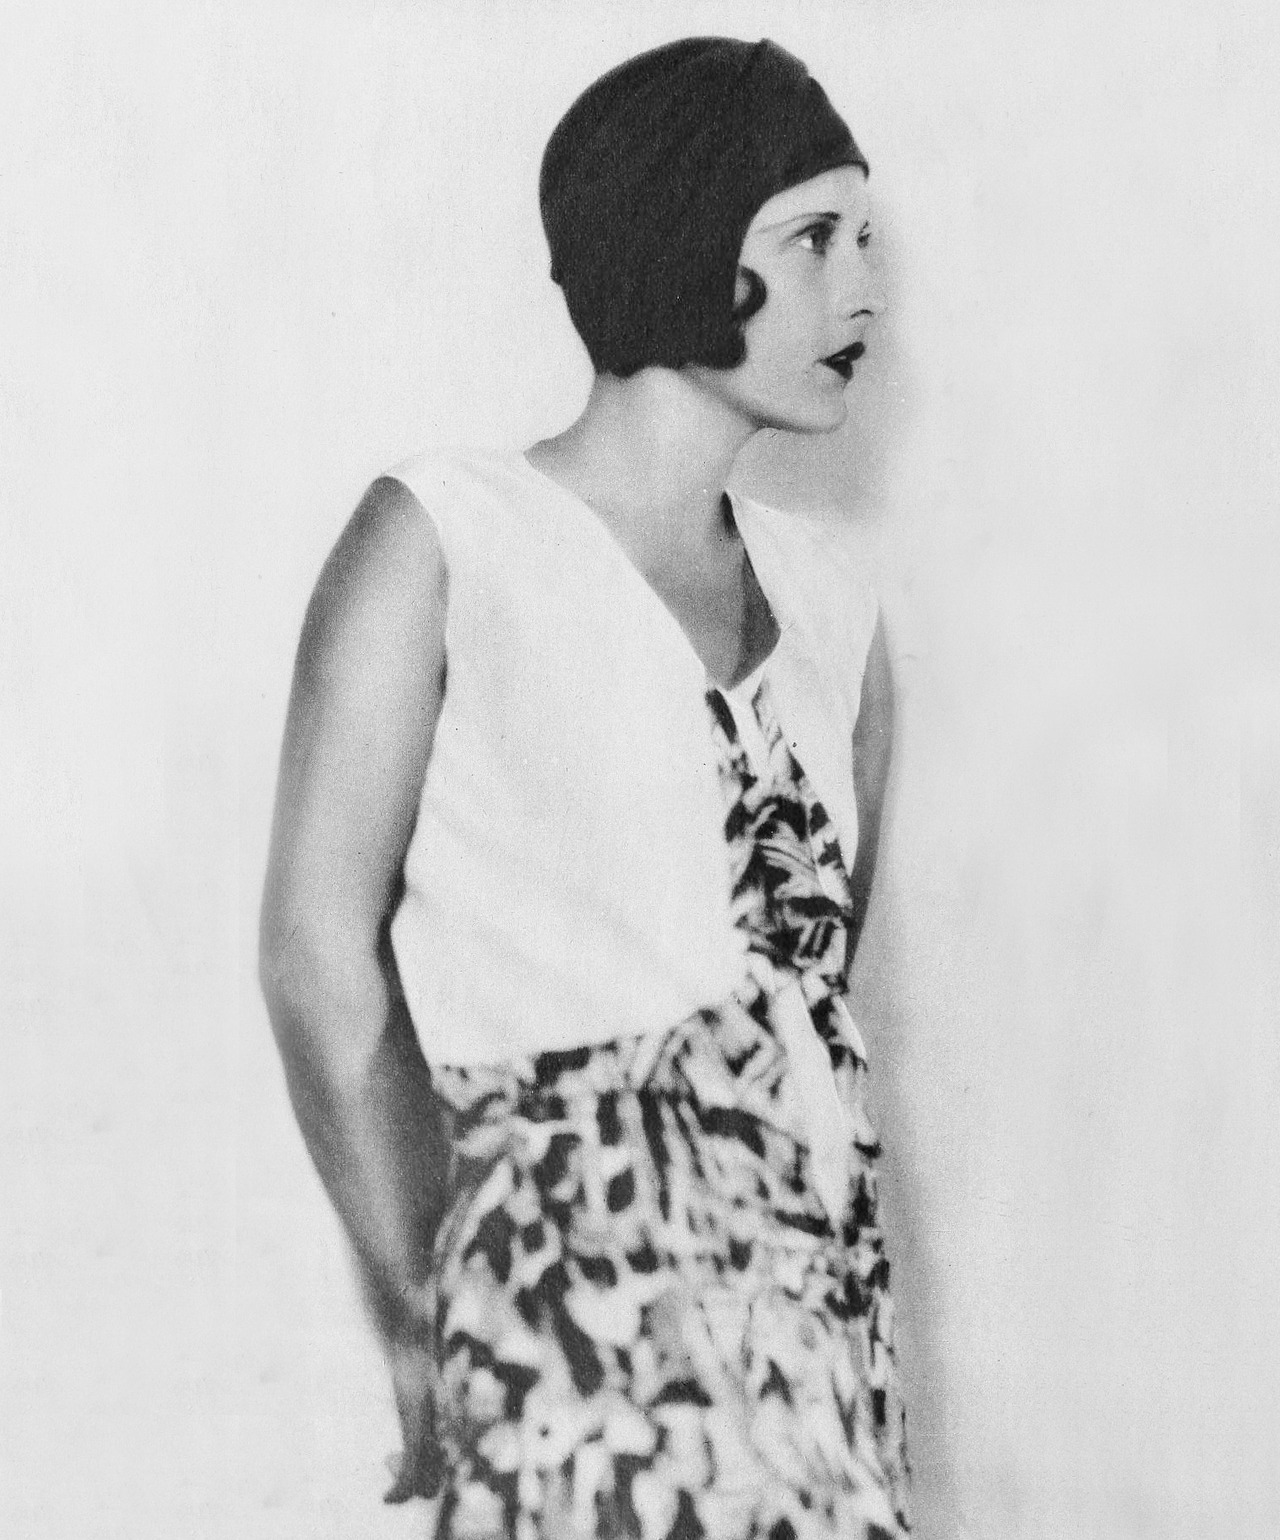 Evelyn Brent, 1930